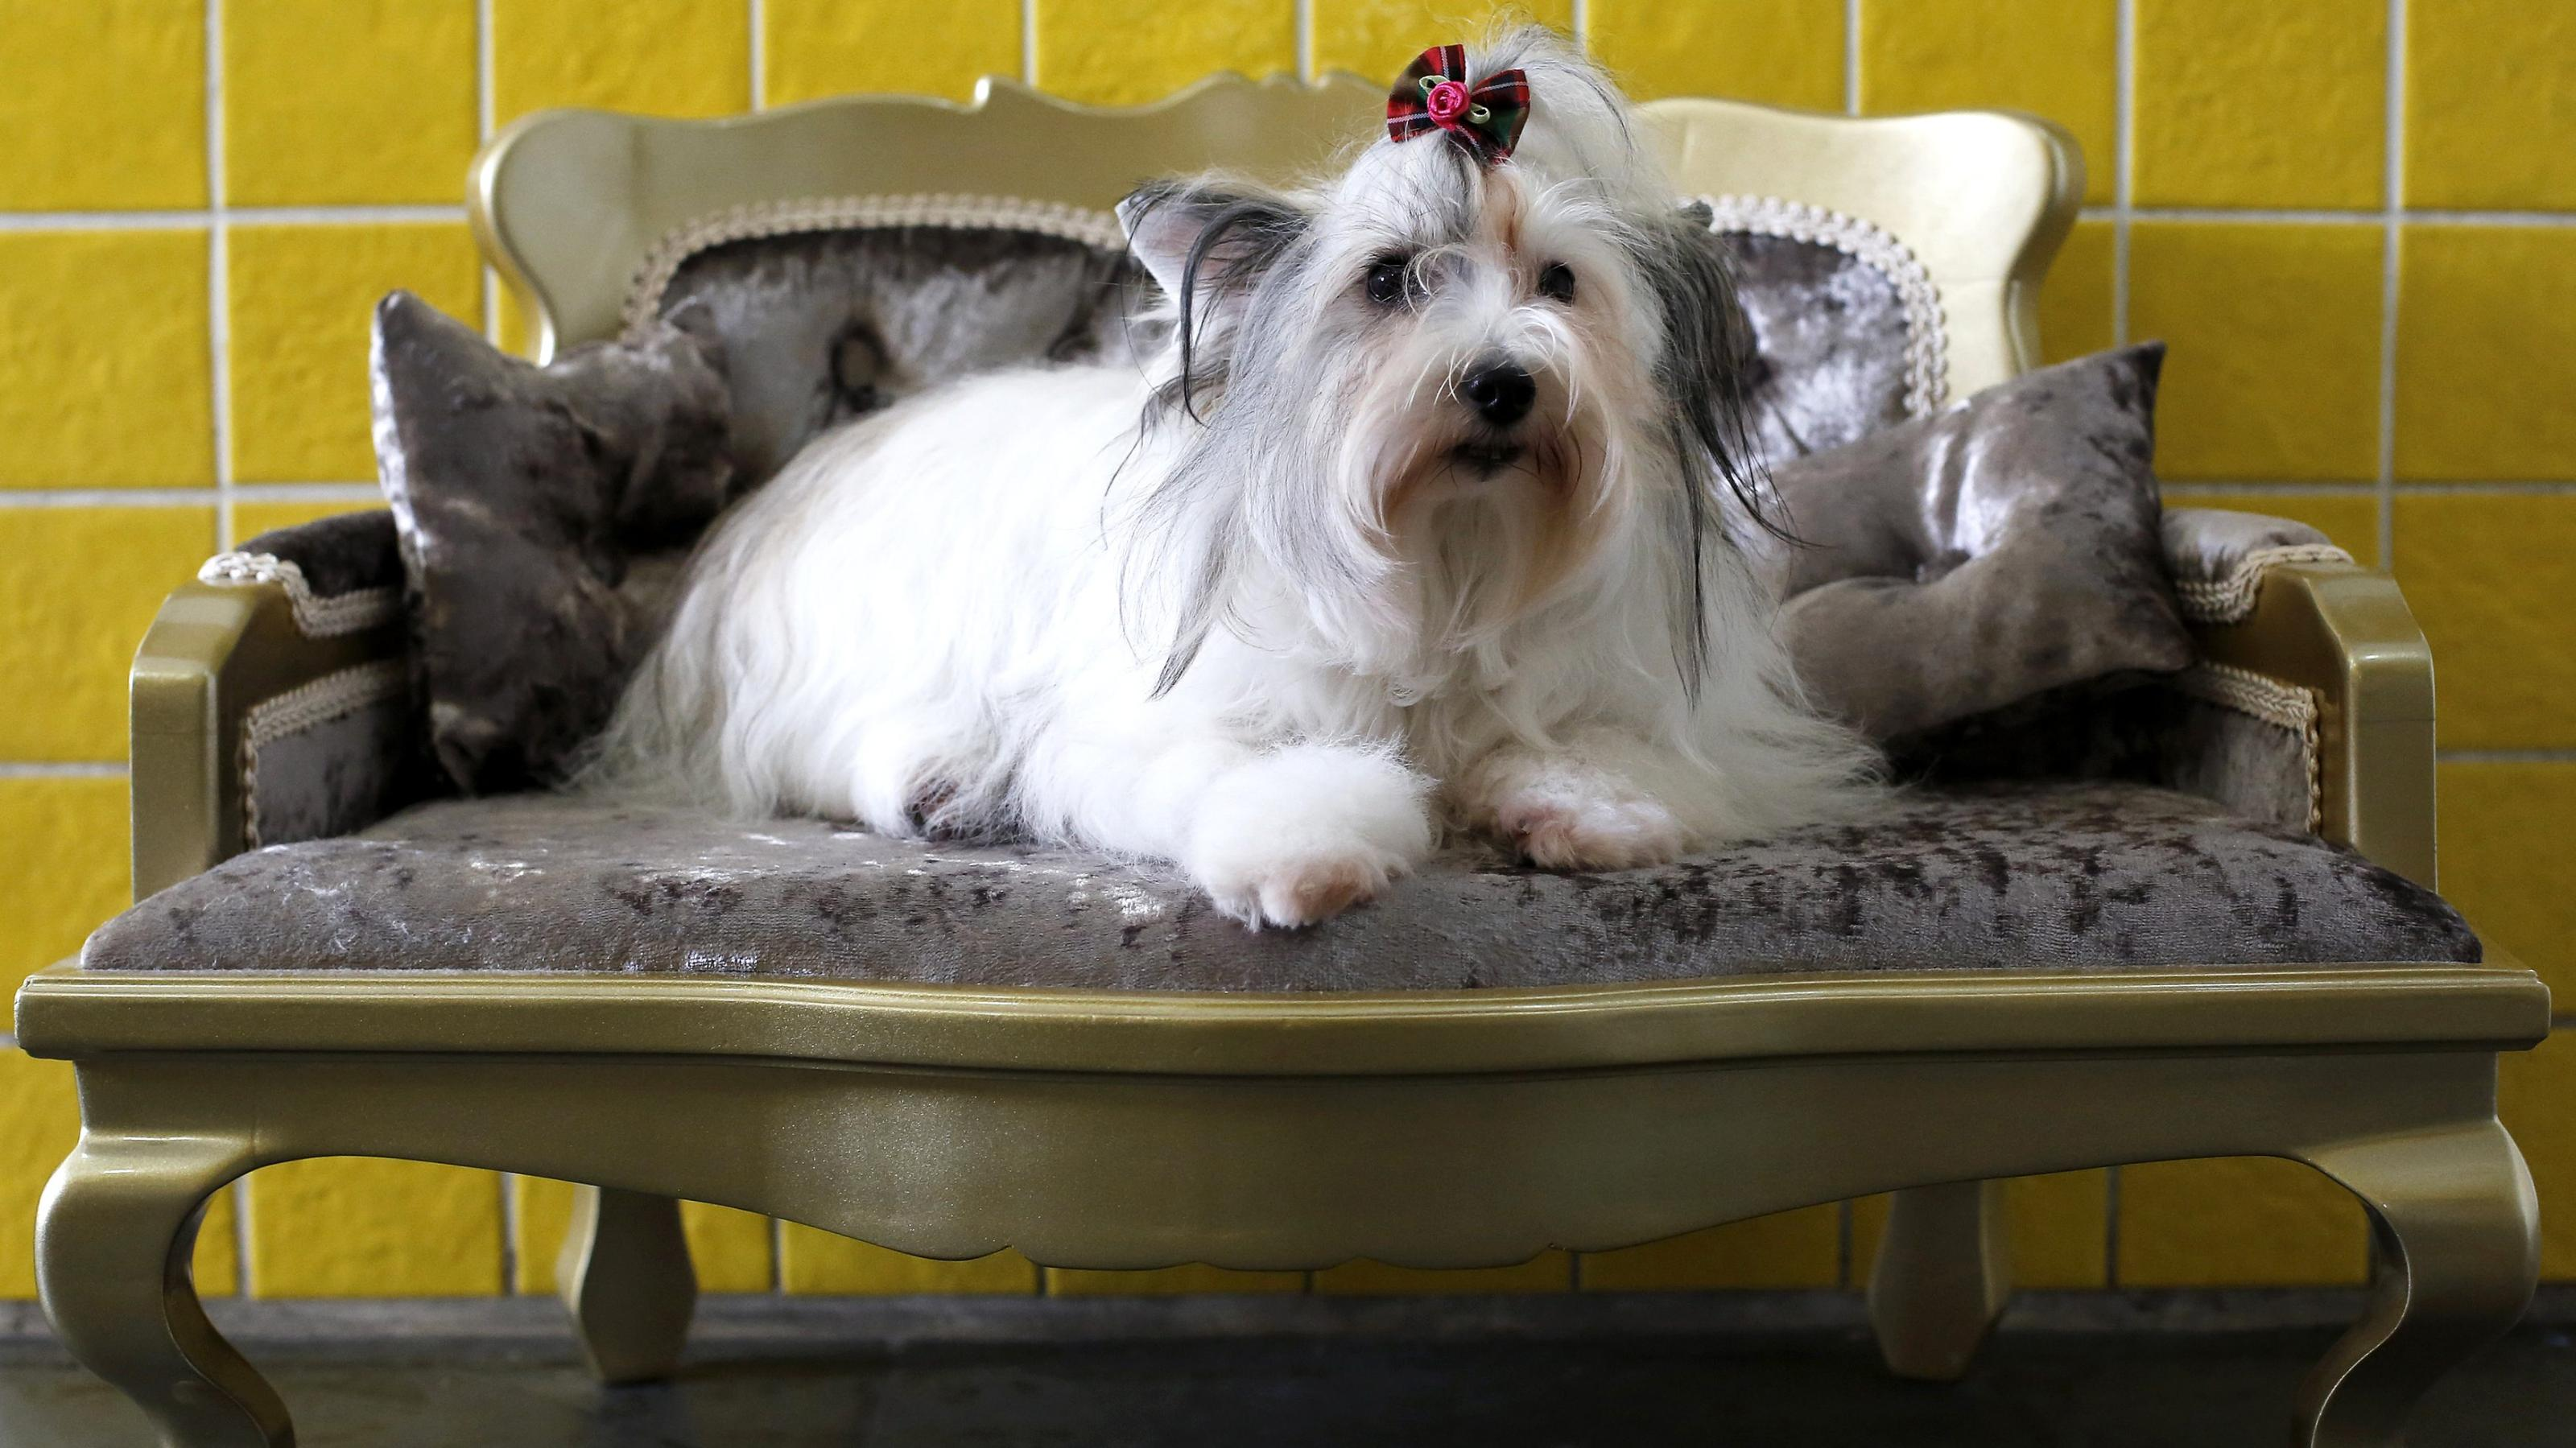 India's Heads Up For Tails is betting on luxury pet care